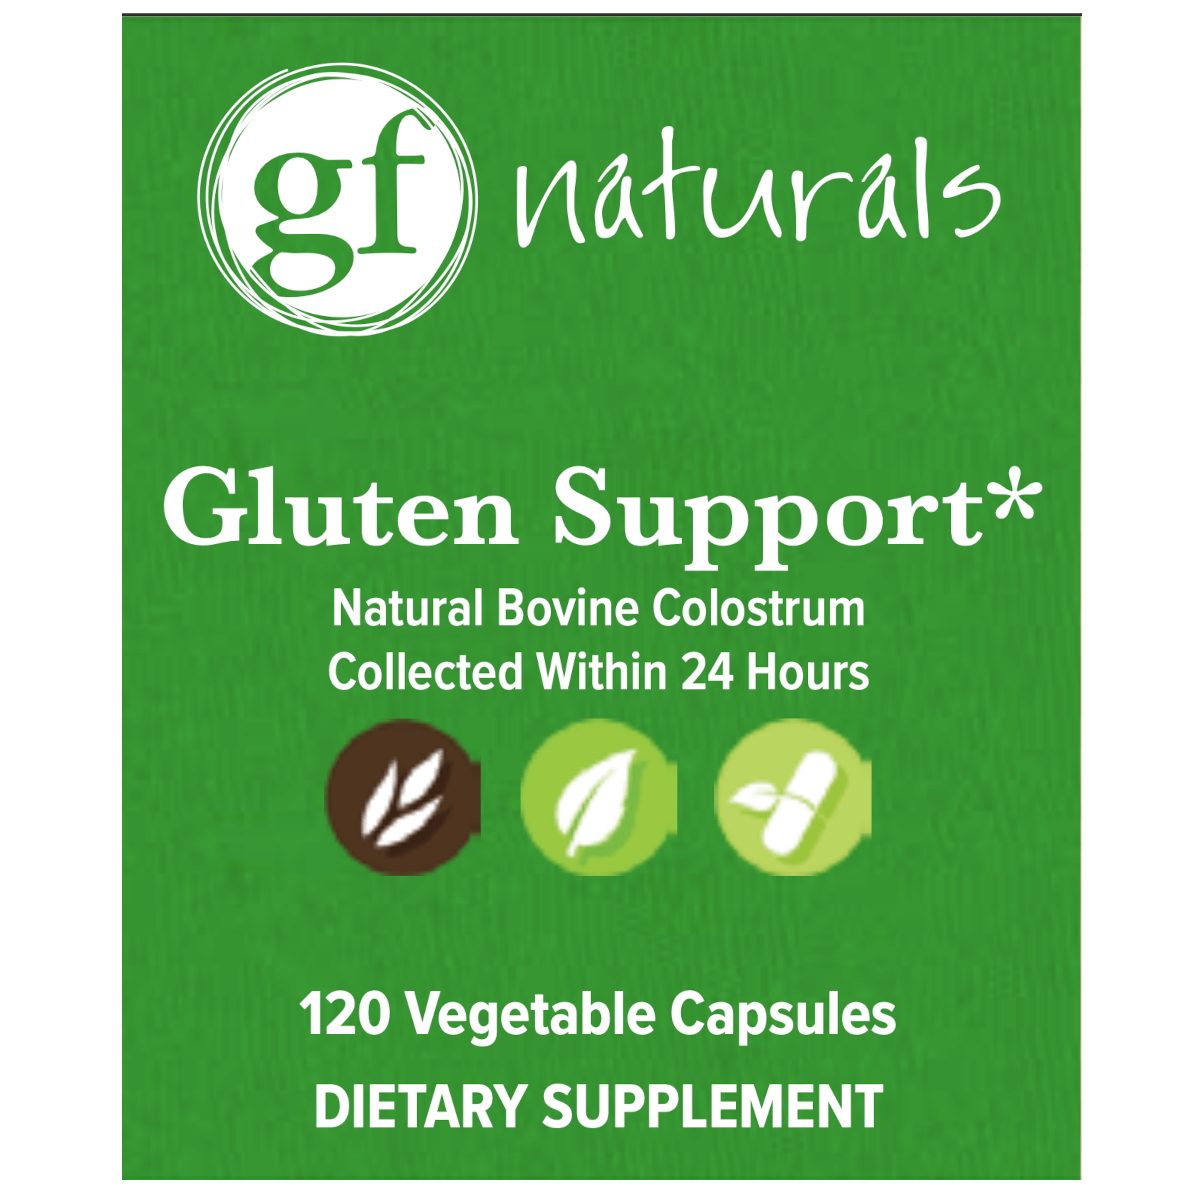 Gluten Support Supplement.